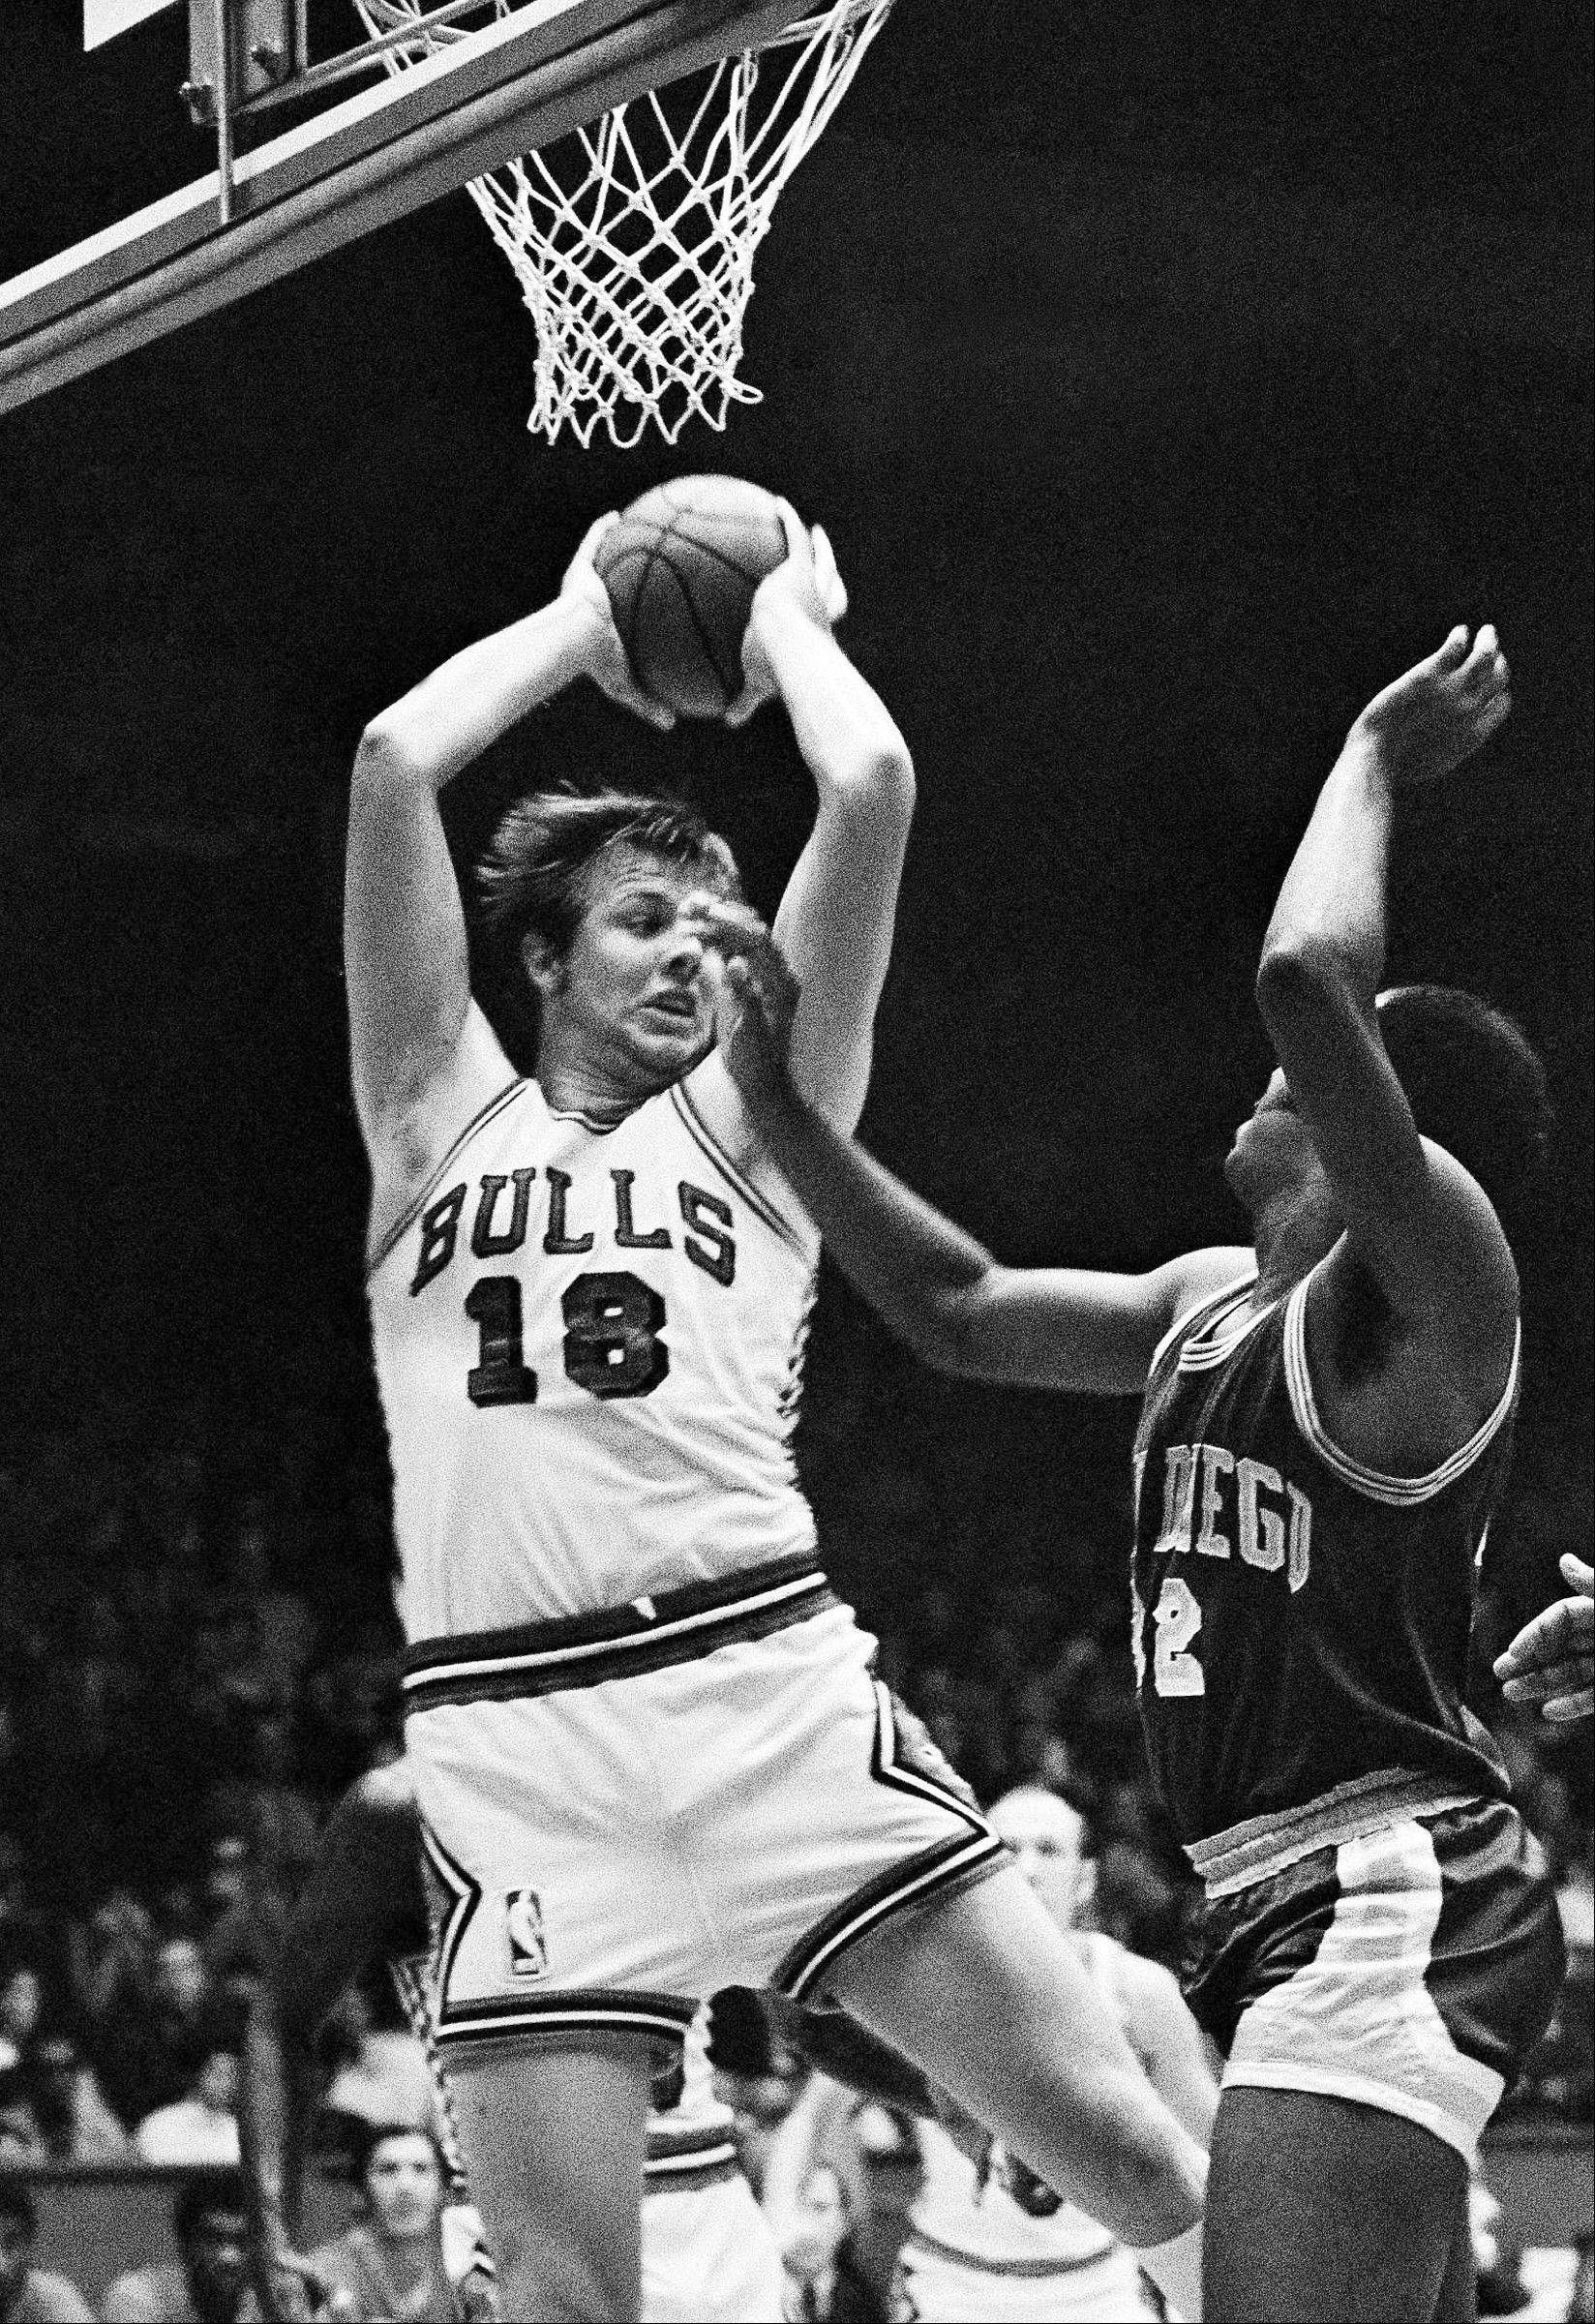 In this Oct. 13, 1970 file photo, Chicago Bulls� Tom Boerwinkle (18) grabs a rebound against San Diego Rockets� Don Adams (32) during an NBA basketball game in Chicago. Boerwinkle, who played 10 seasons with the Bulls, died Tuesday, March 26, 2013, at age 67.